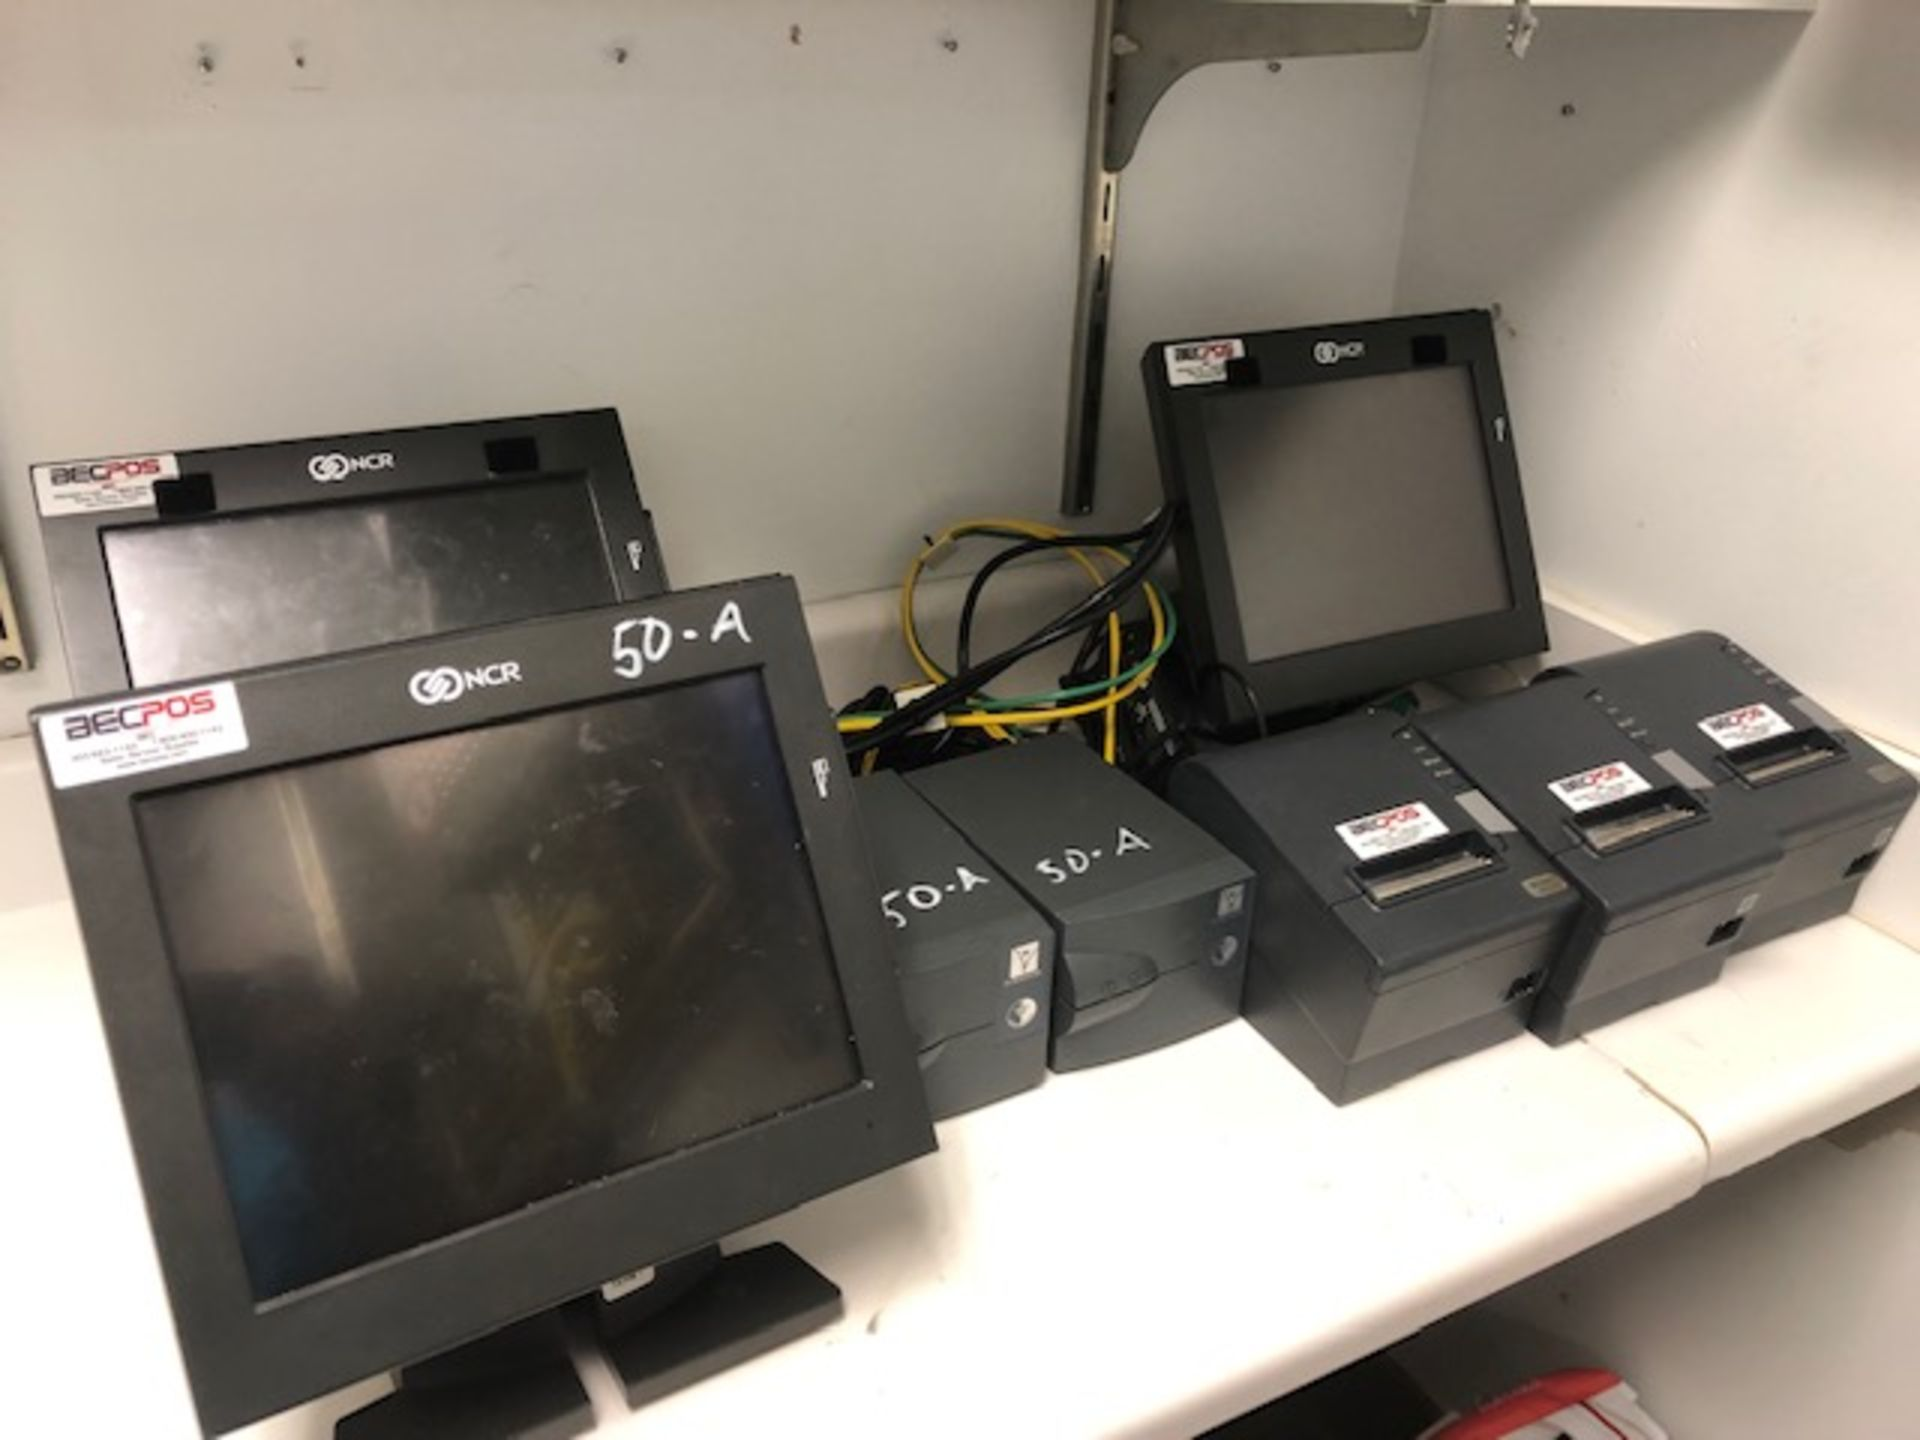 Lot 50a - (3) NCR Monitors and (3) Receipt Printers